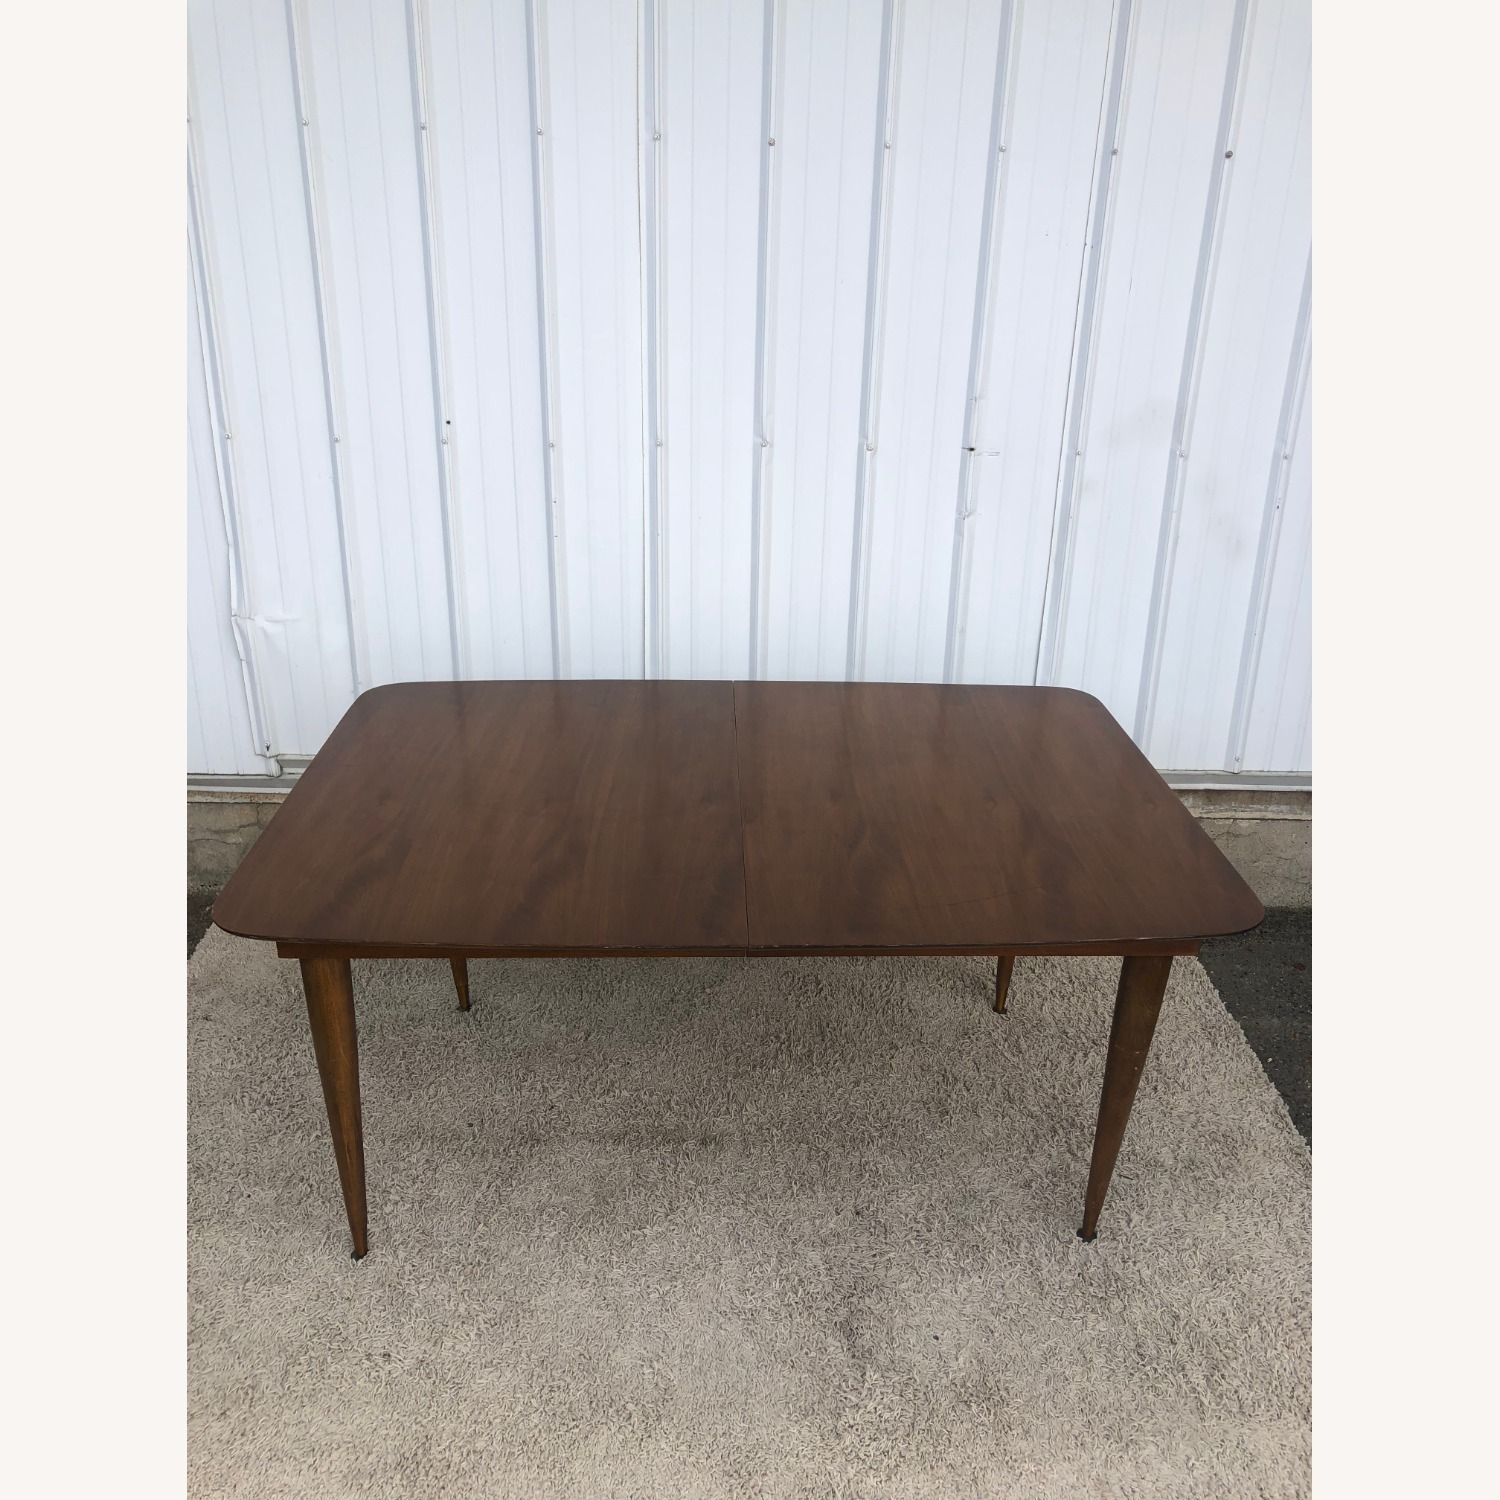 Mid Century Walnut Dining Table with One Leaf - image-6